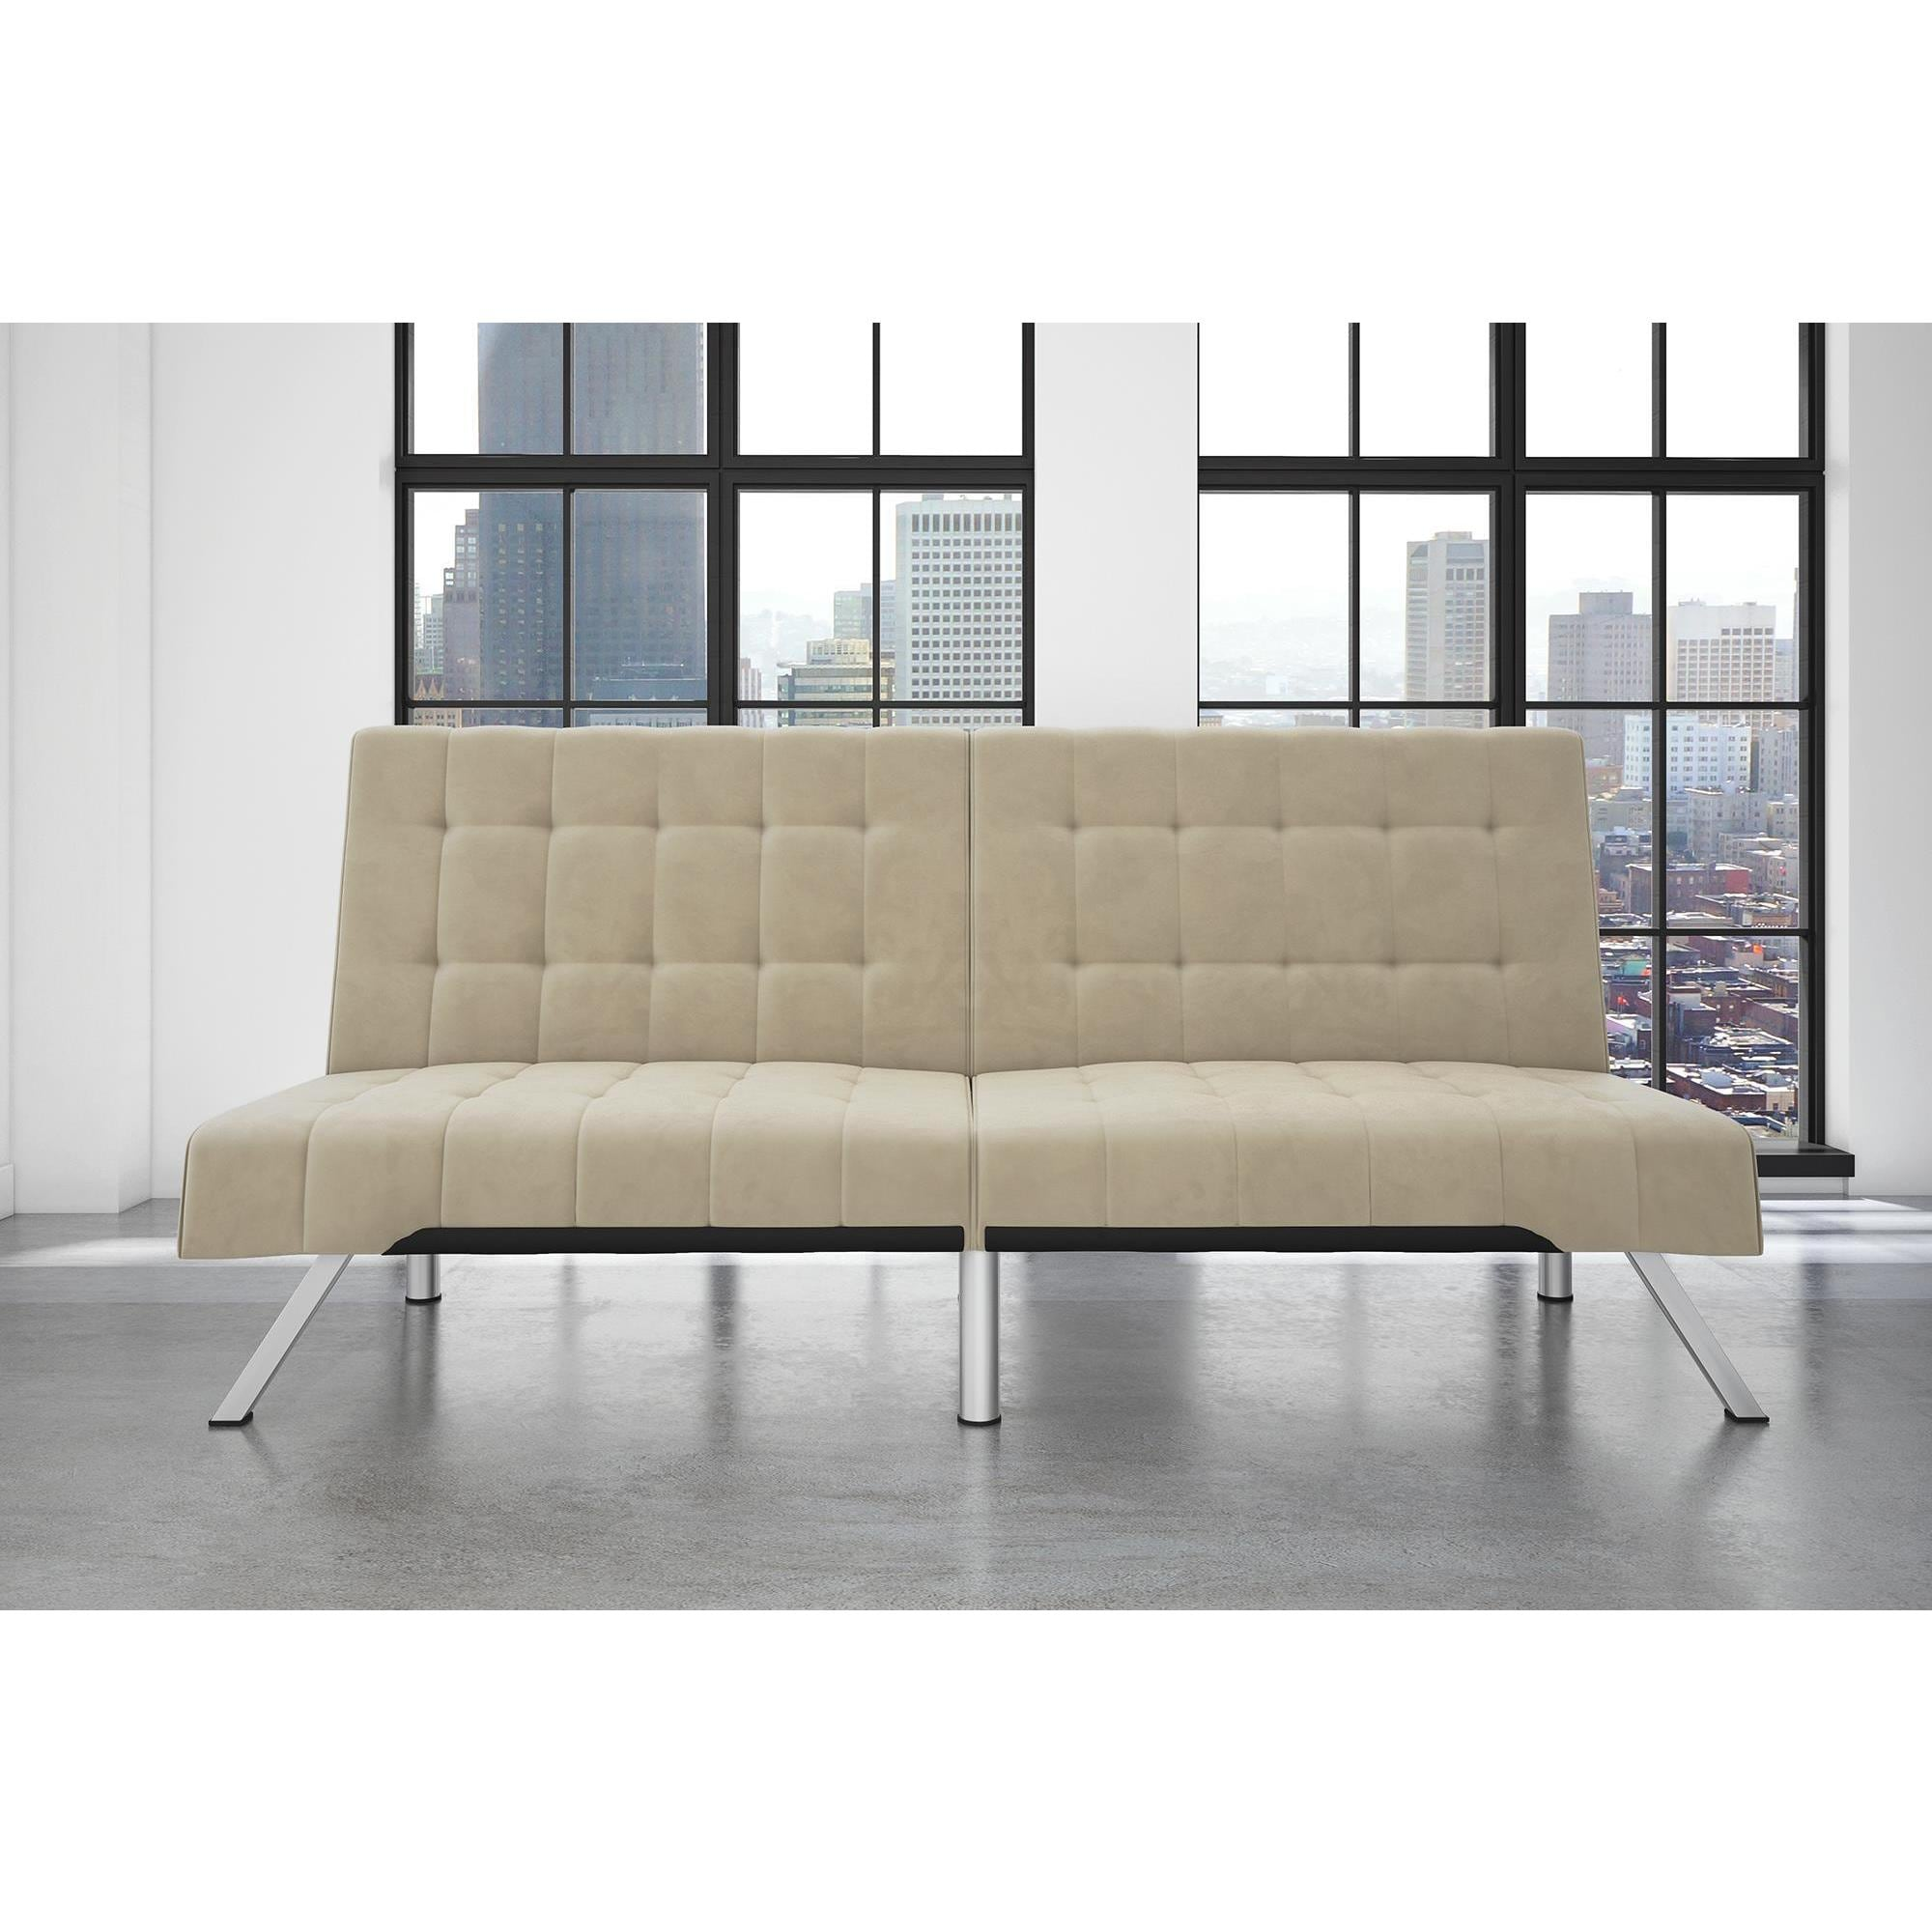 sofa futon austin futons garden today overstock free america shipping of store modern furniture product aubreth home